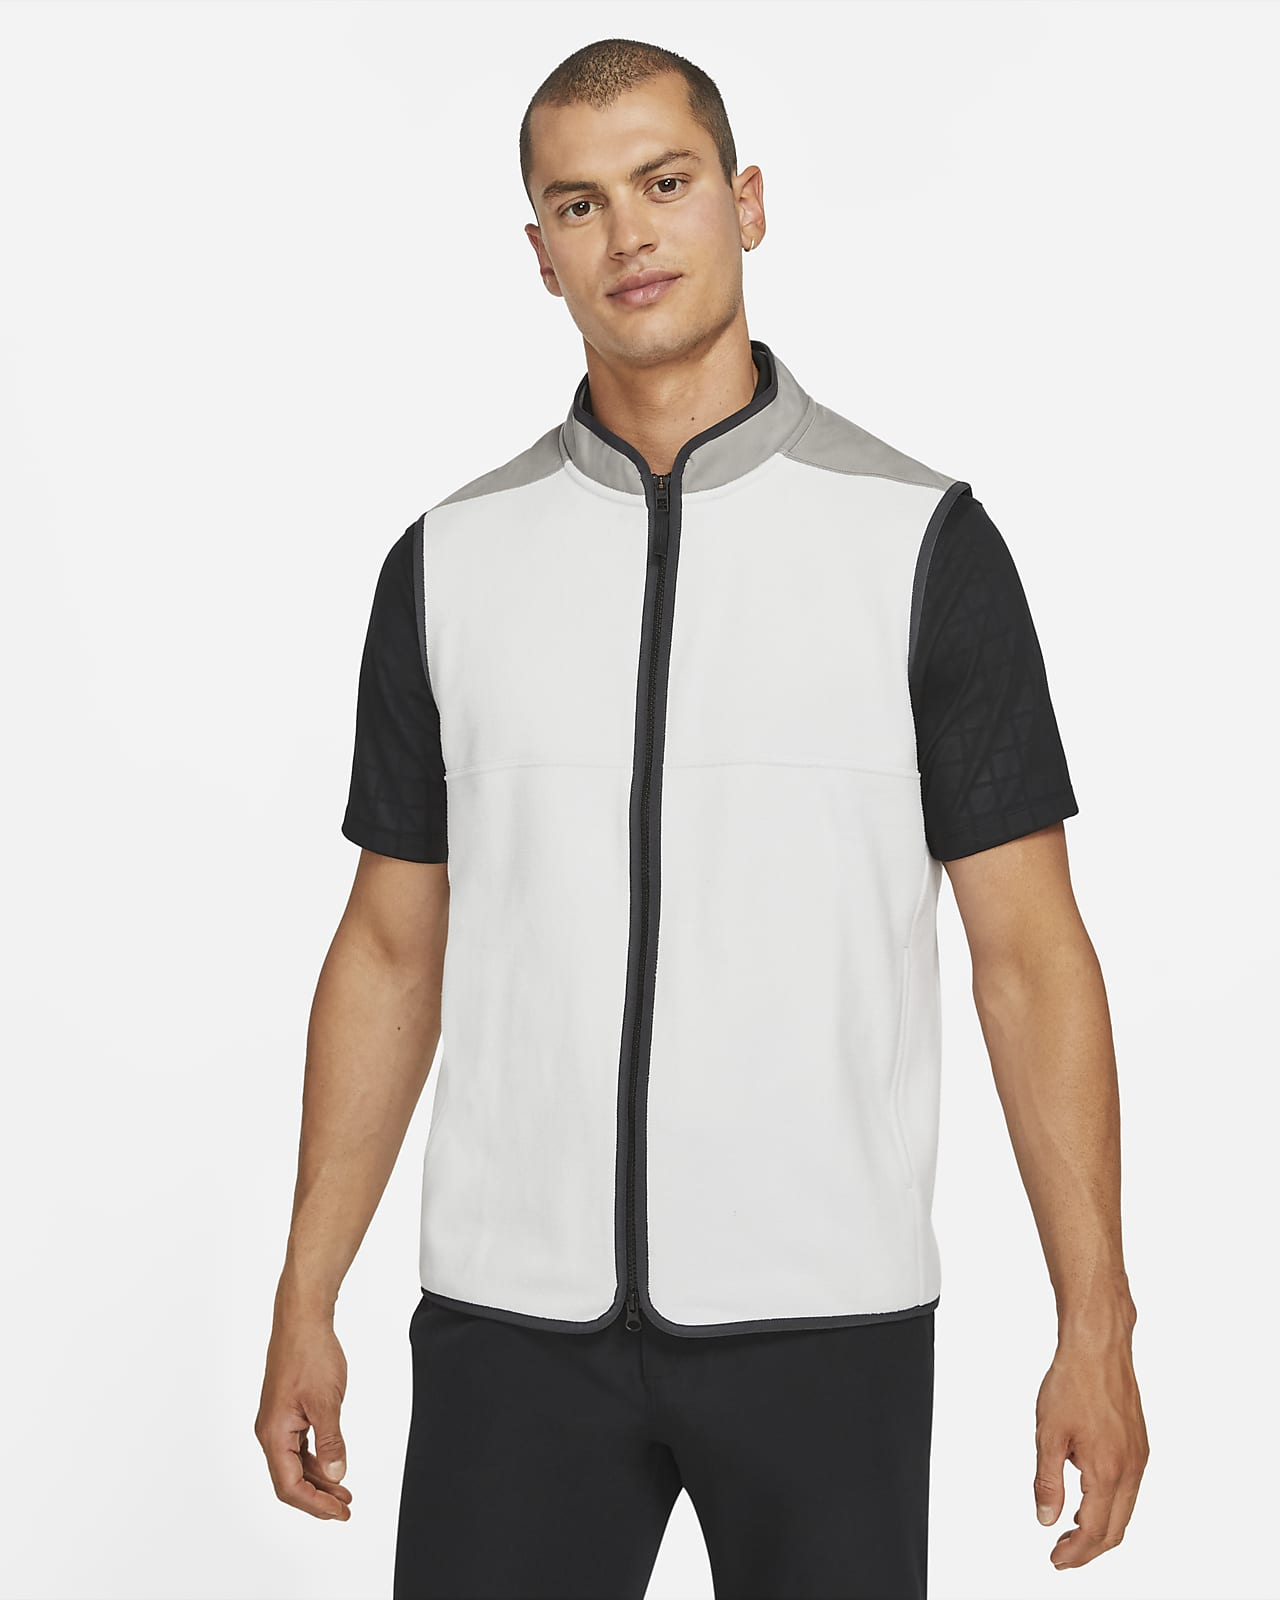 Nike Therma-FIT Victory Men's Golf Gilet